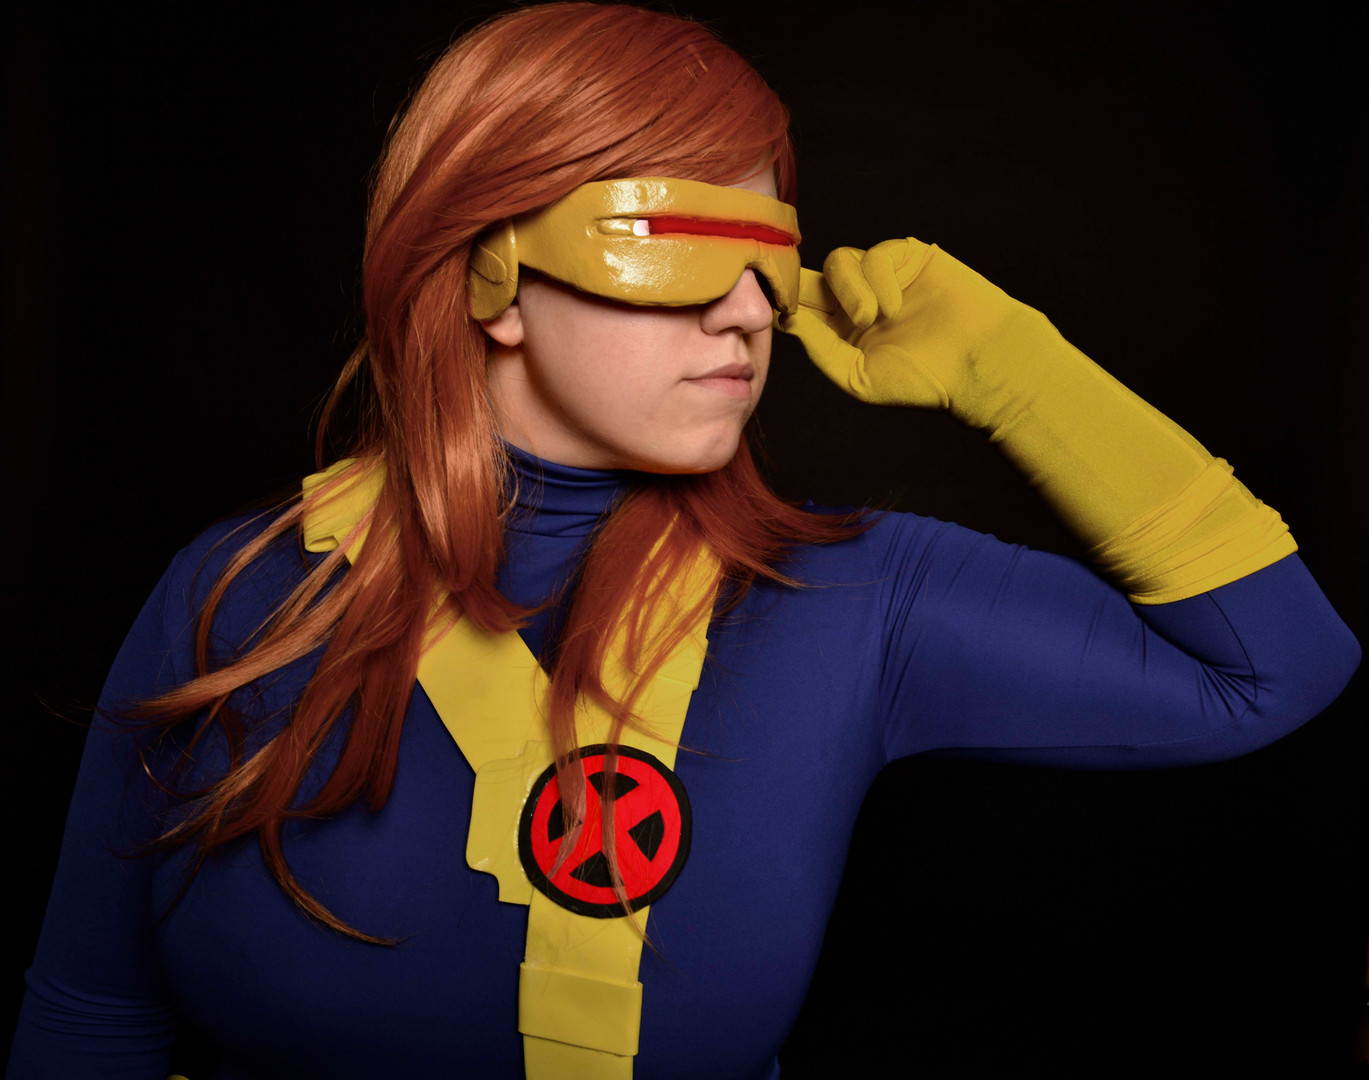 Cyclops Photo by Droo Photography